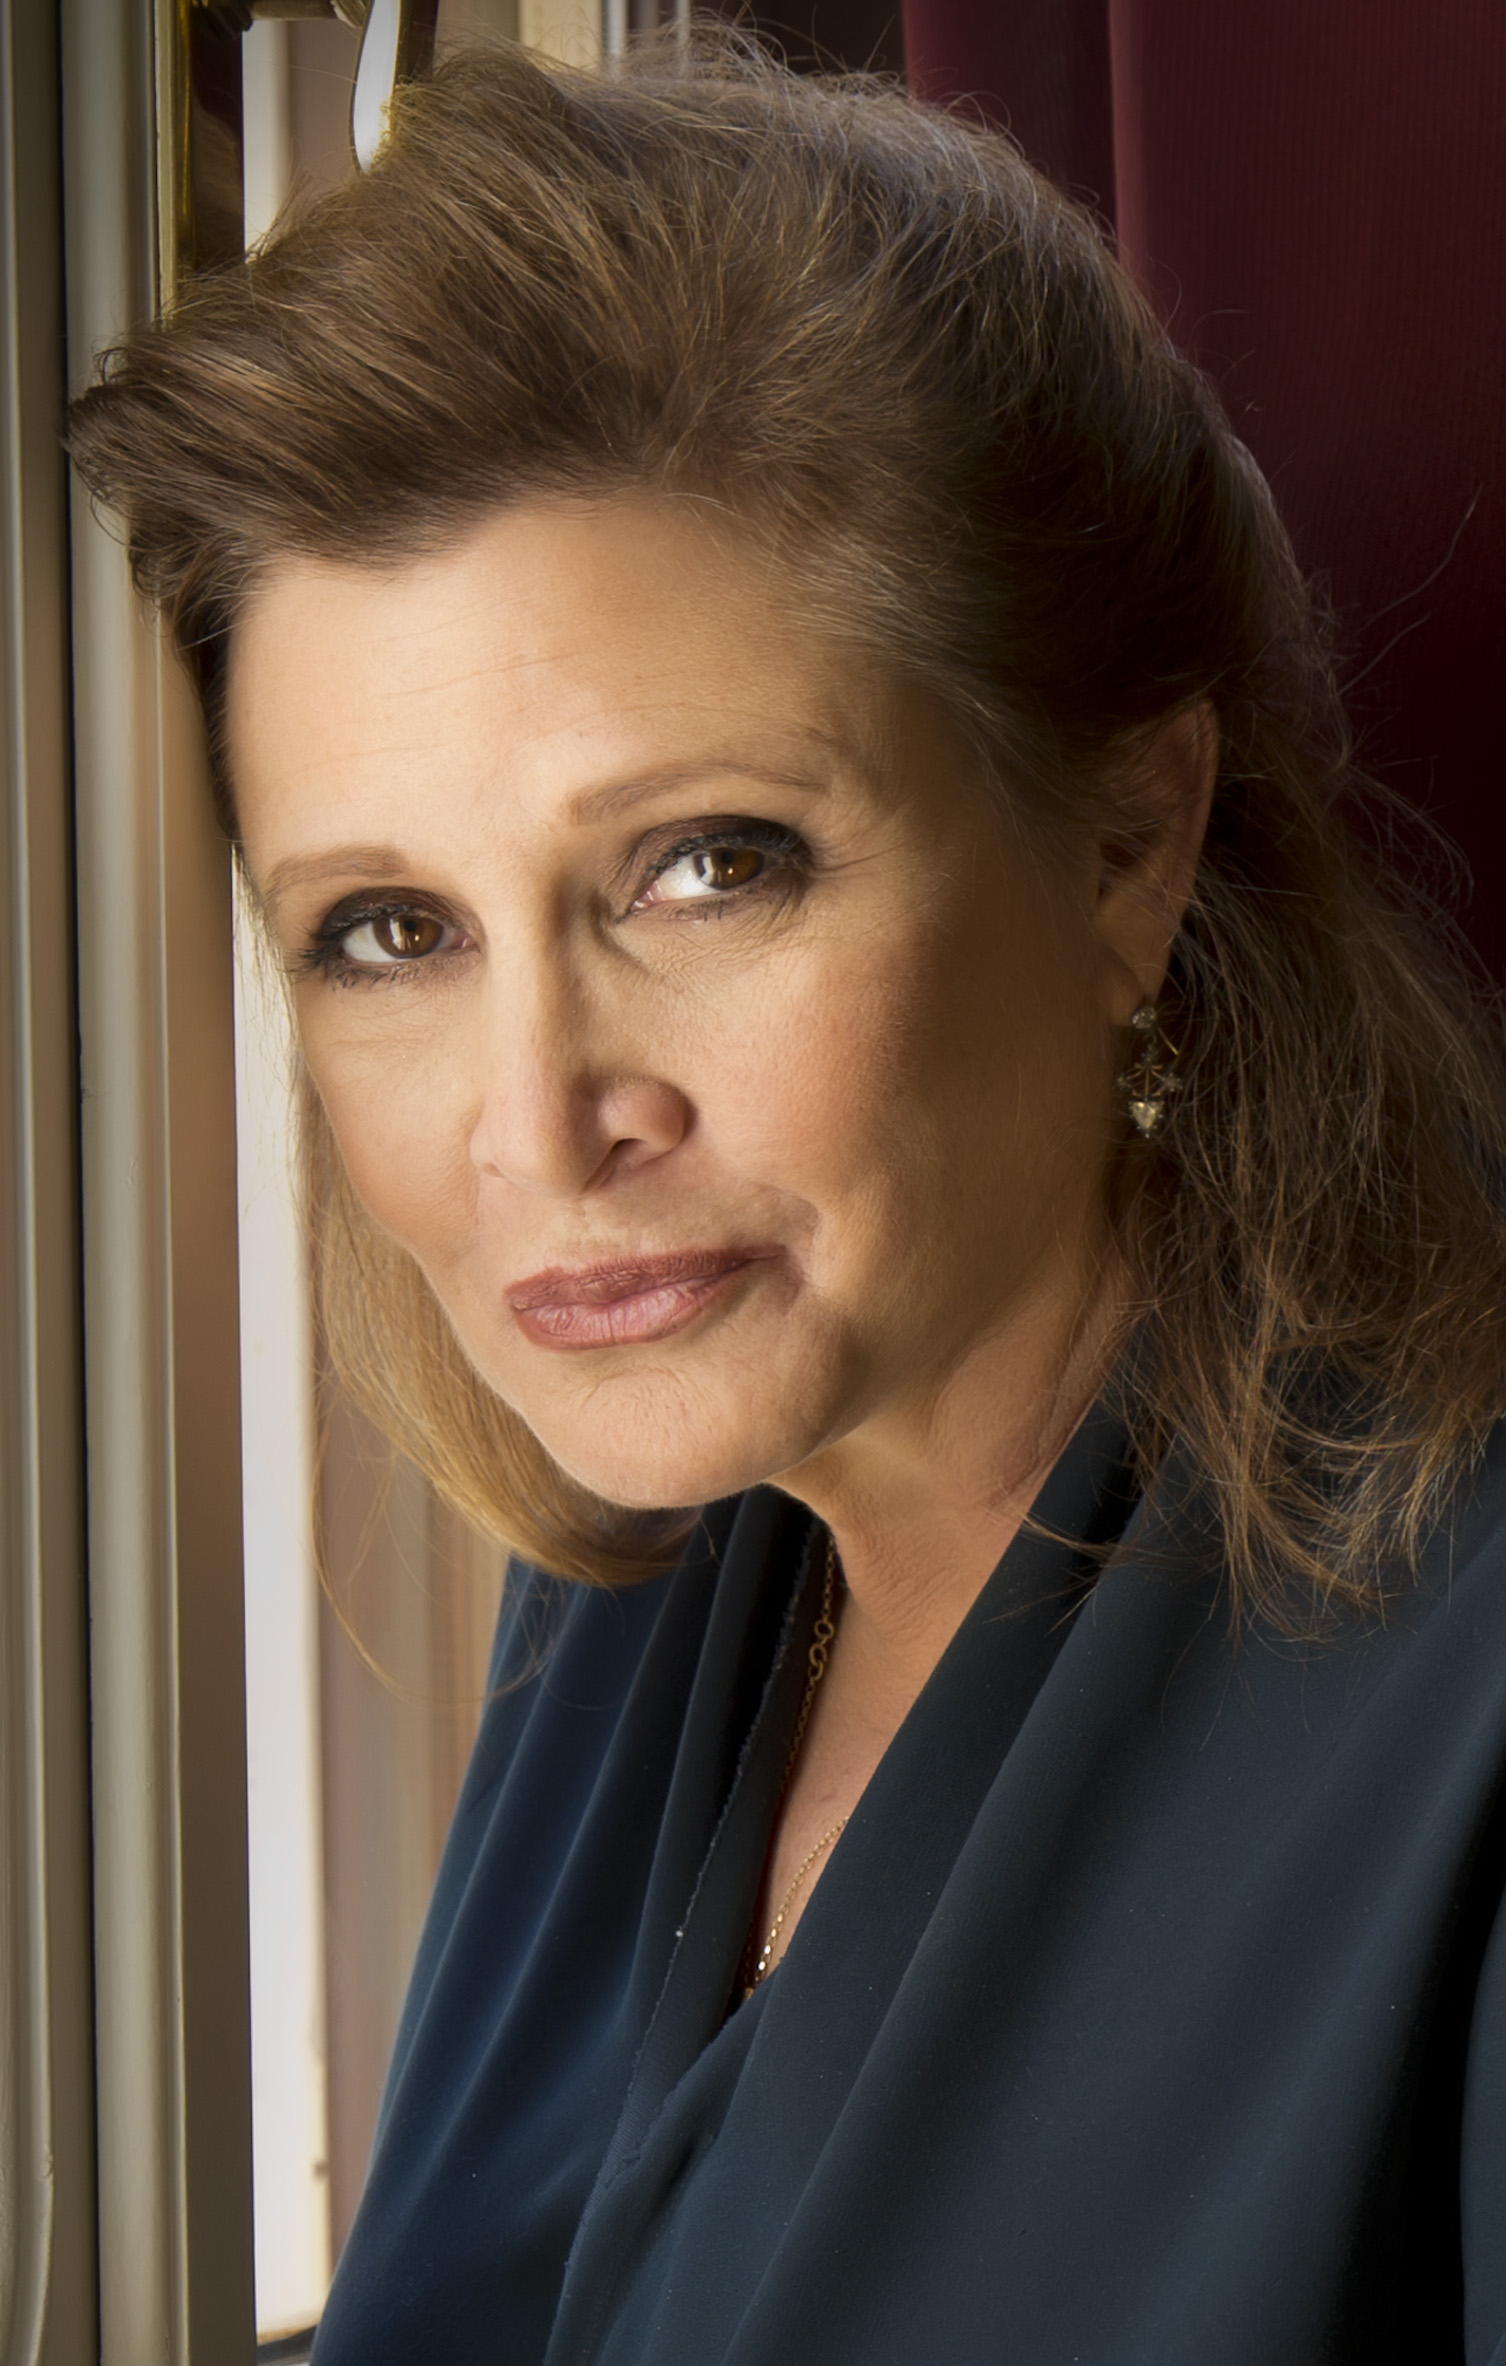 Carrie Fisher portrait. Undated | Public domain photo courtesy of Wikipedia Commons, St. George News